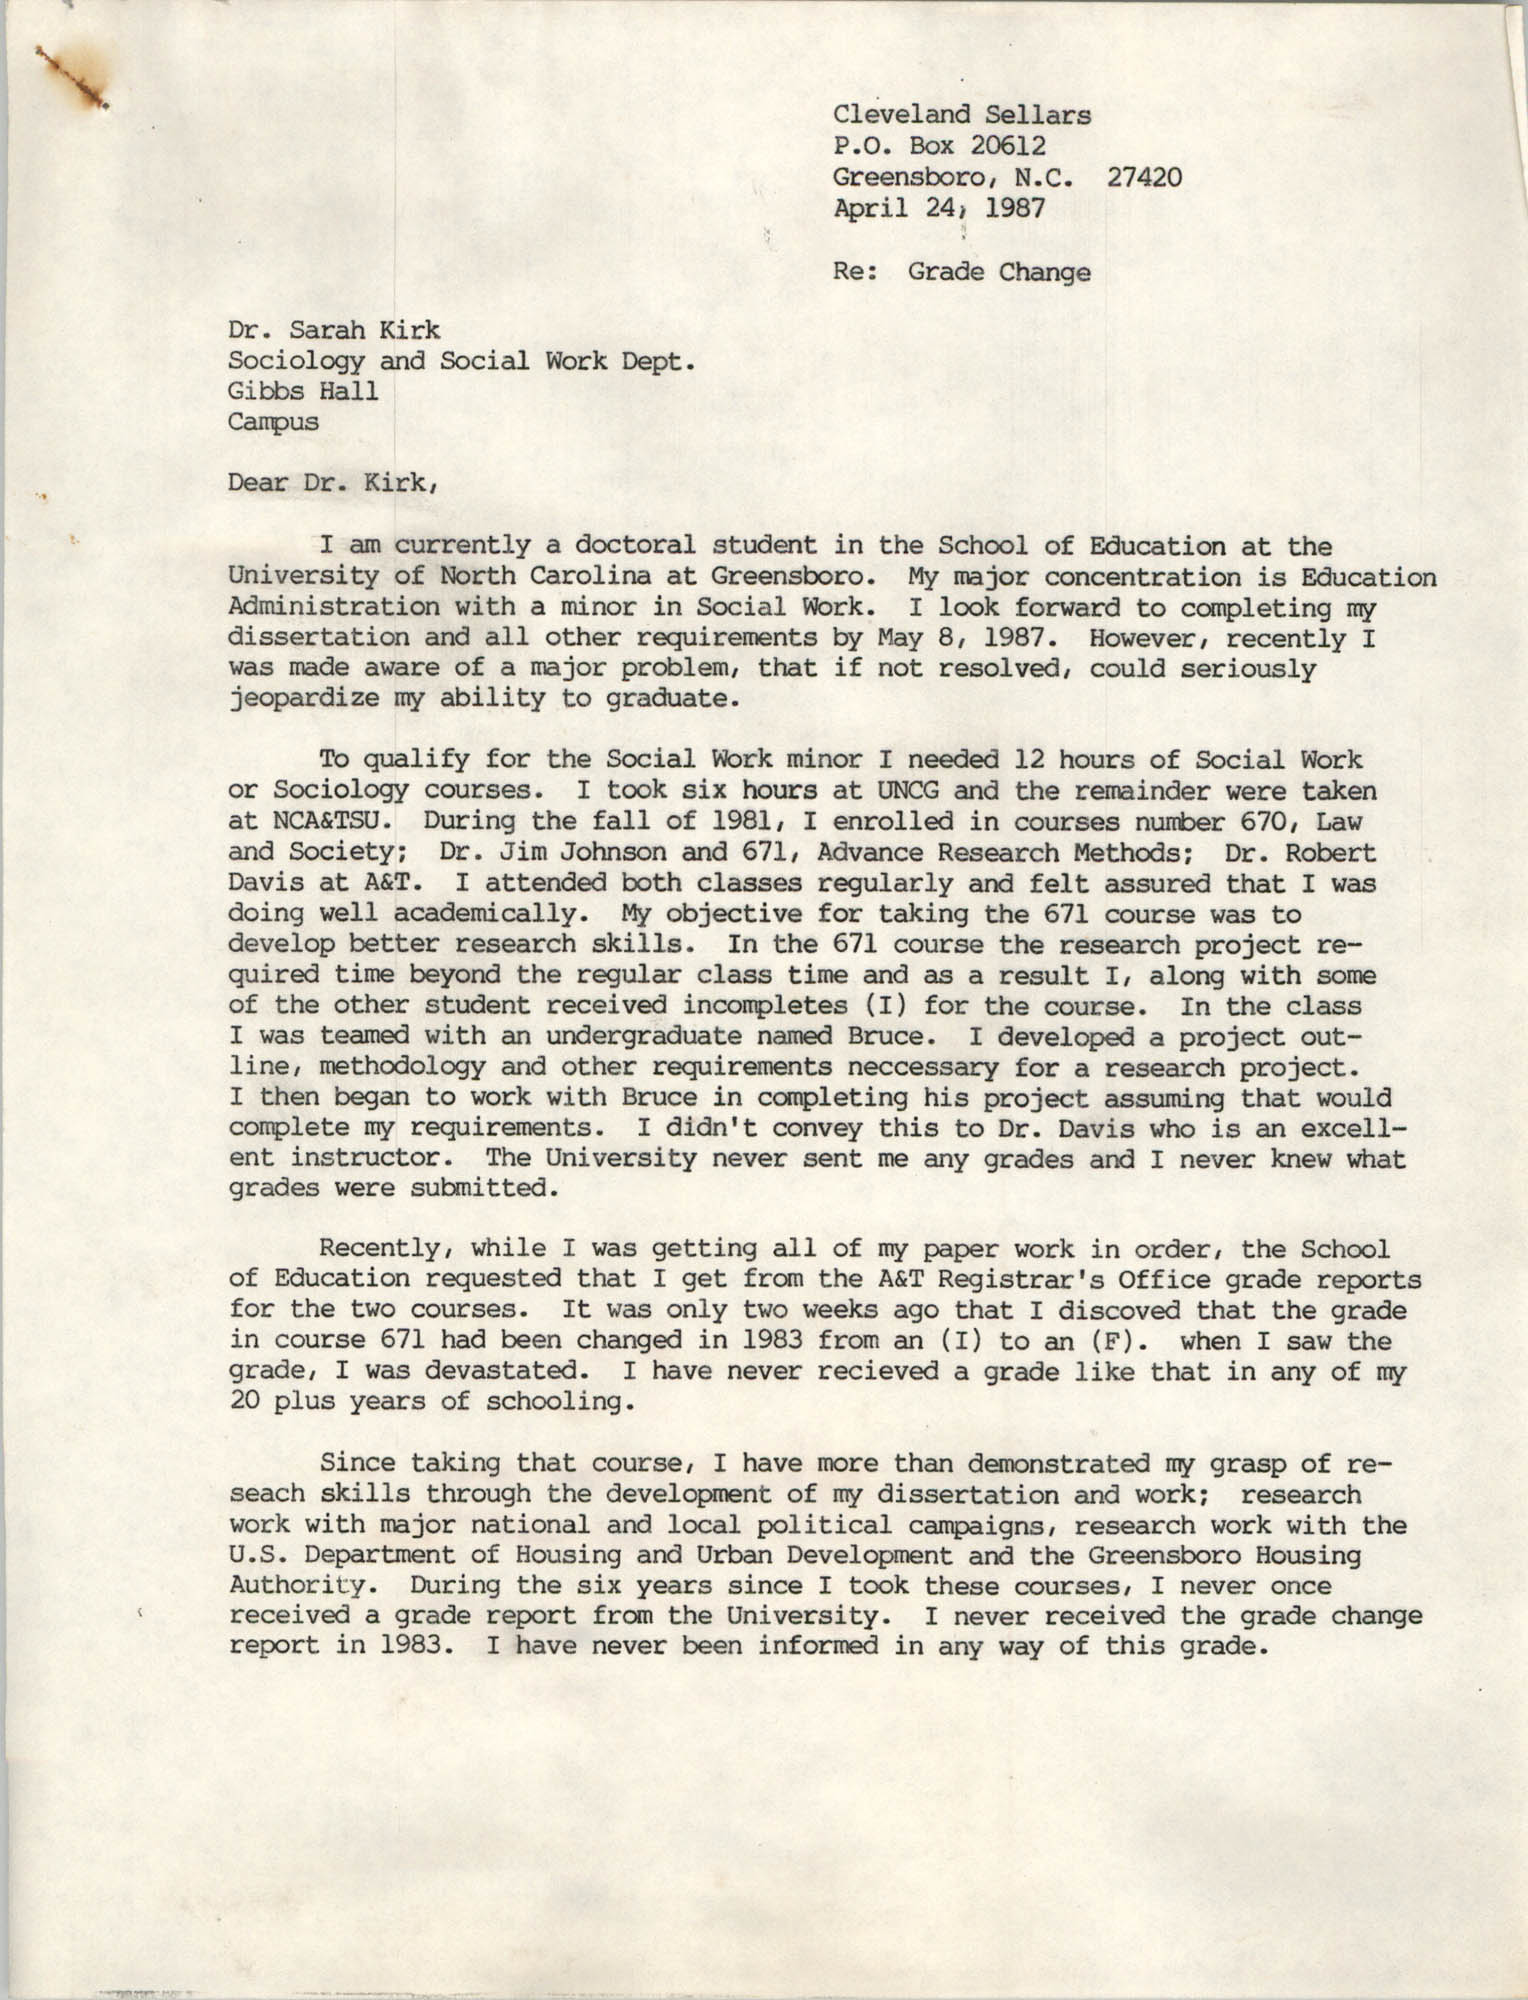 Letter from Cleveland Sellers to Sarah Kirk, April 24, 1987